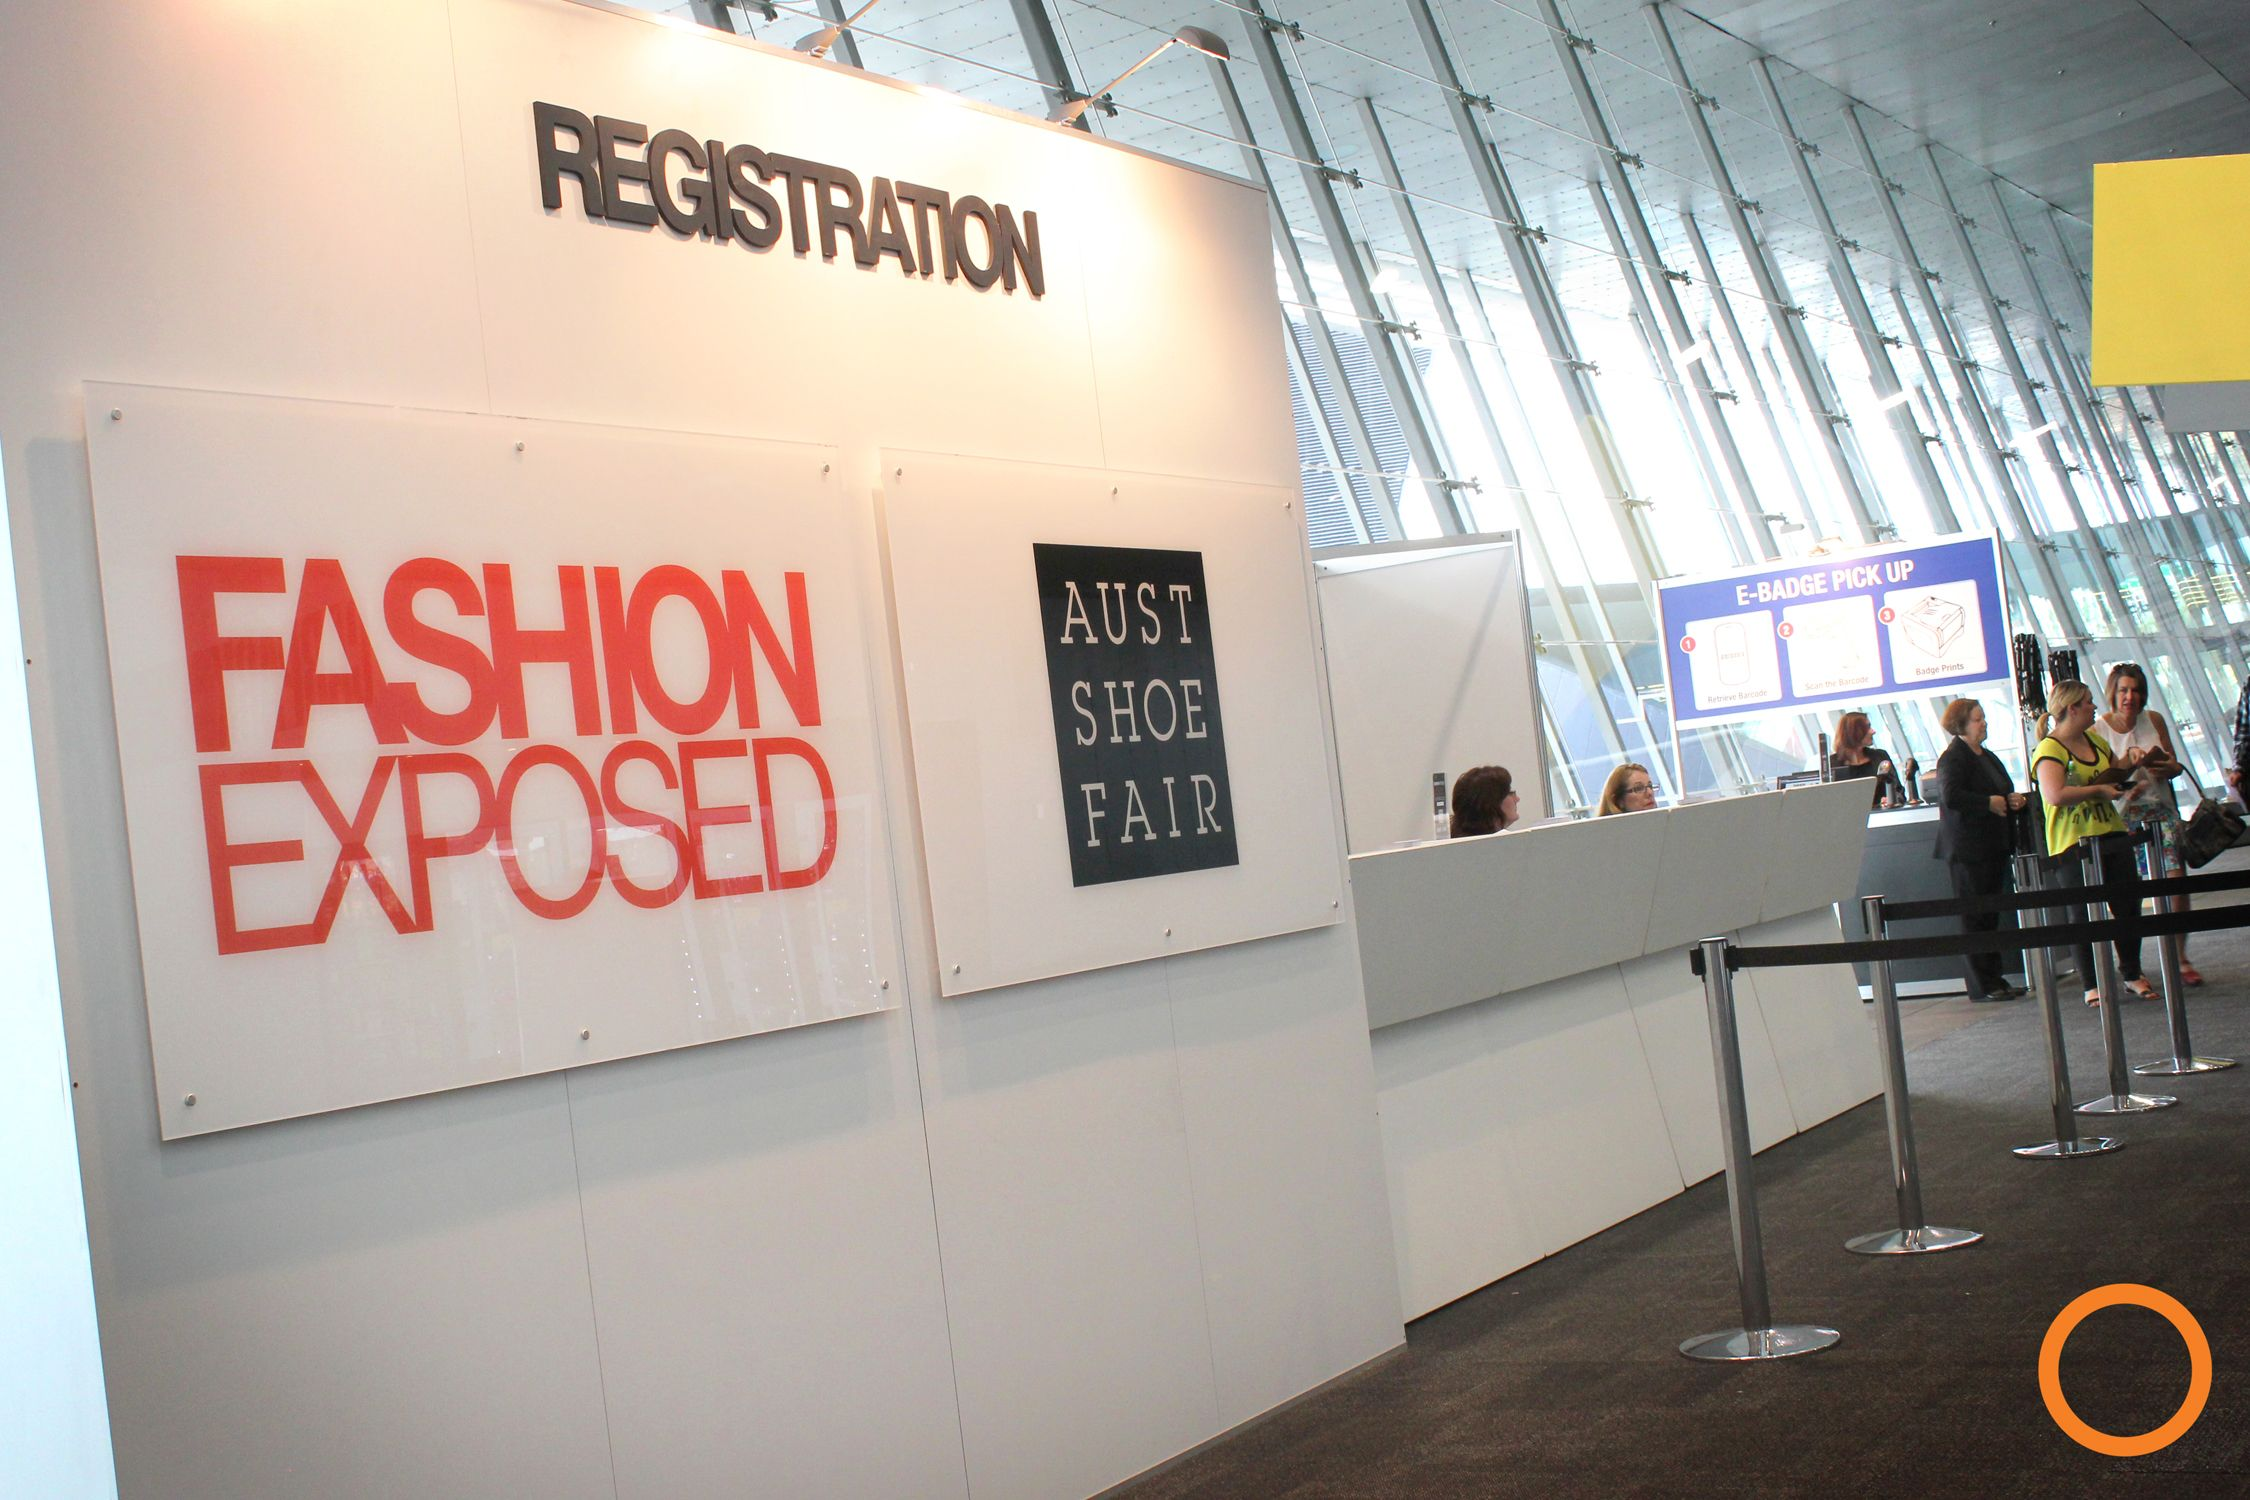 Exhibition Booth Hire Melbourne : Fashion exposed melbourne exhibition registration